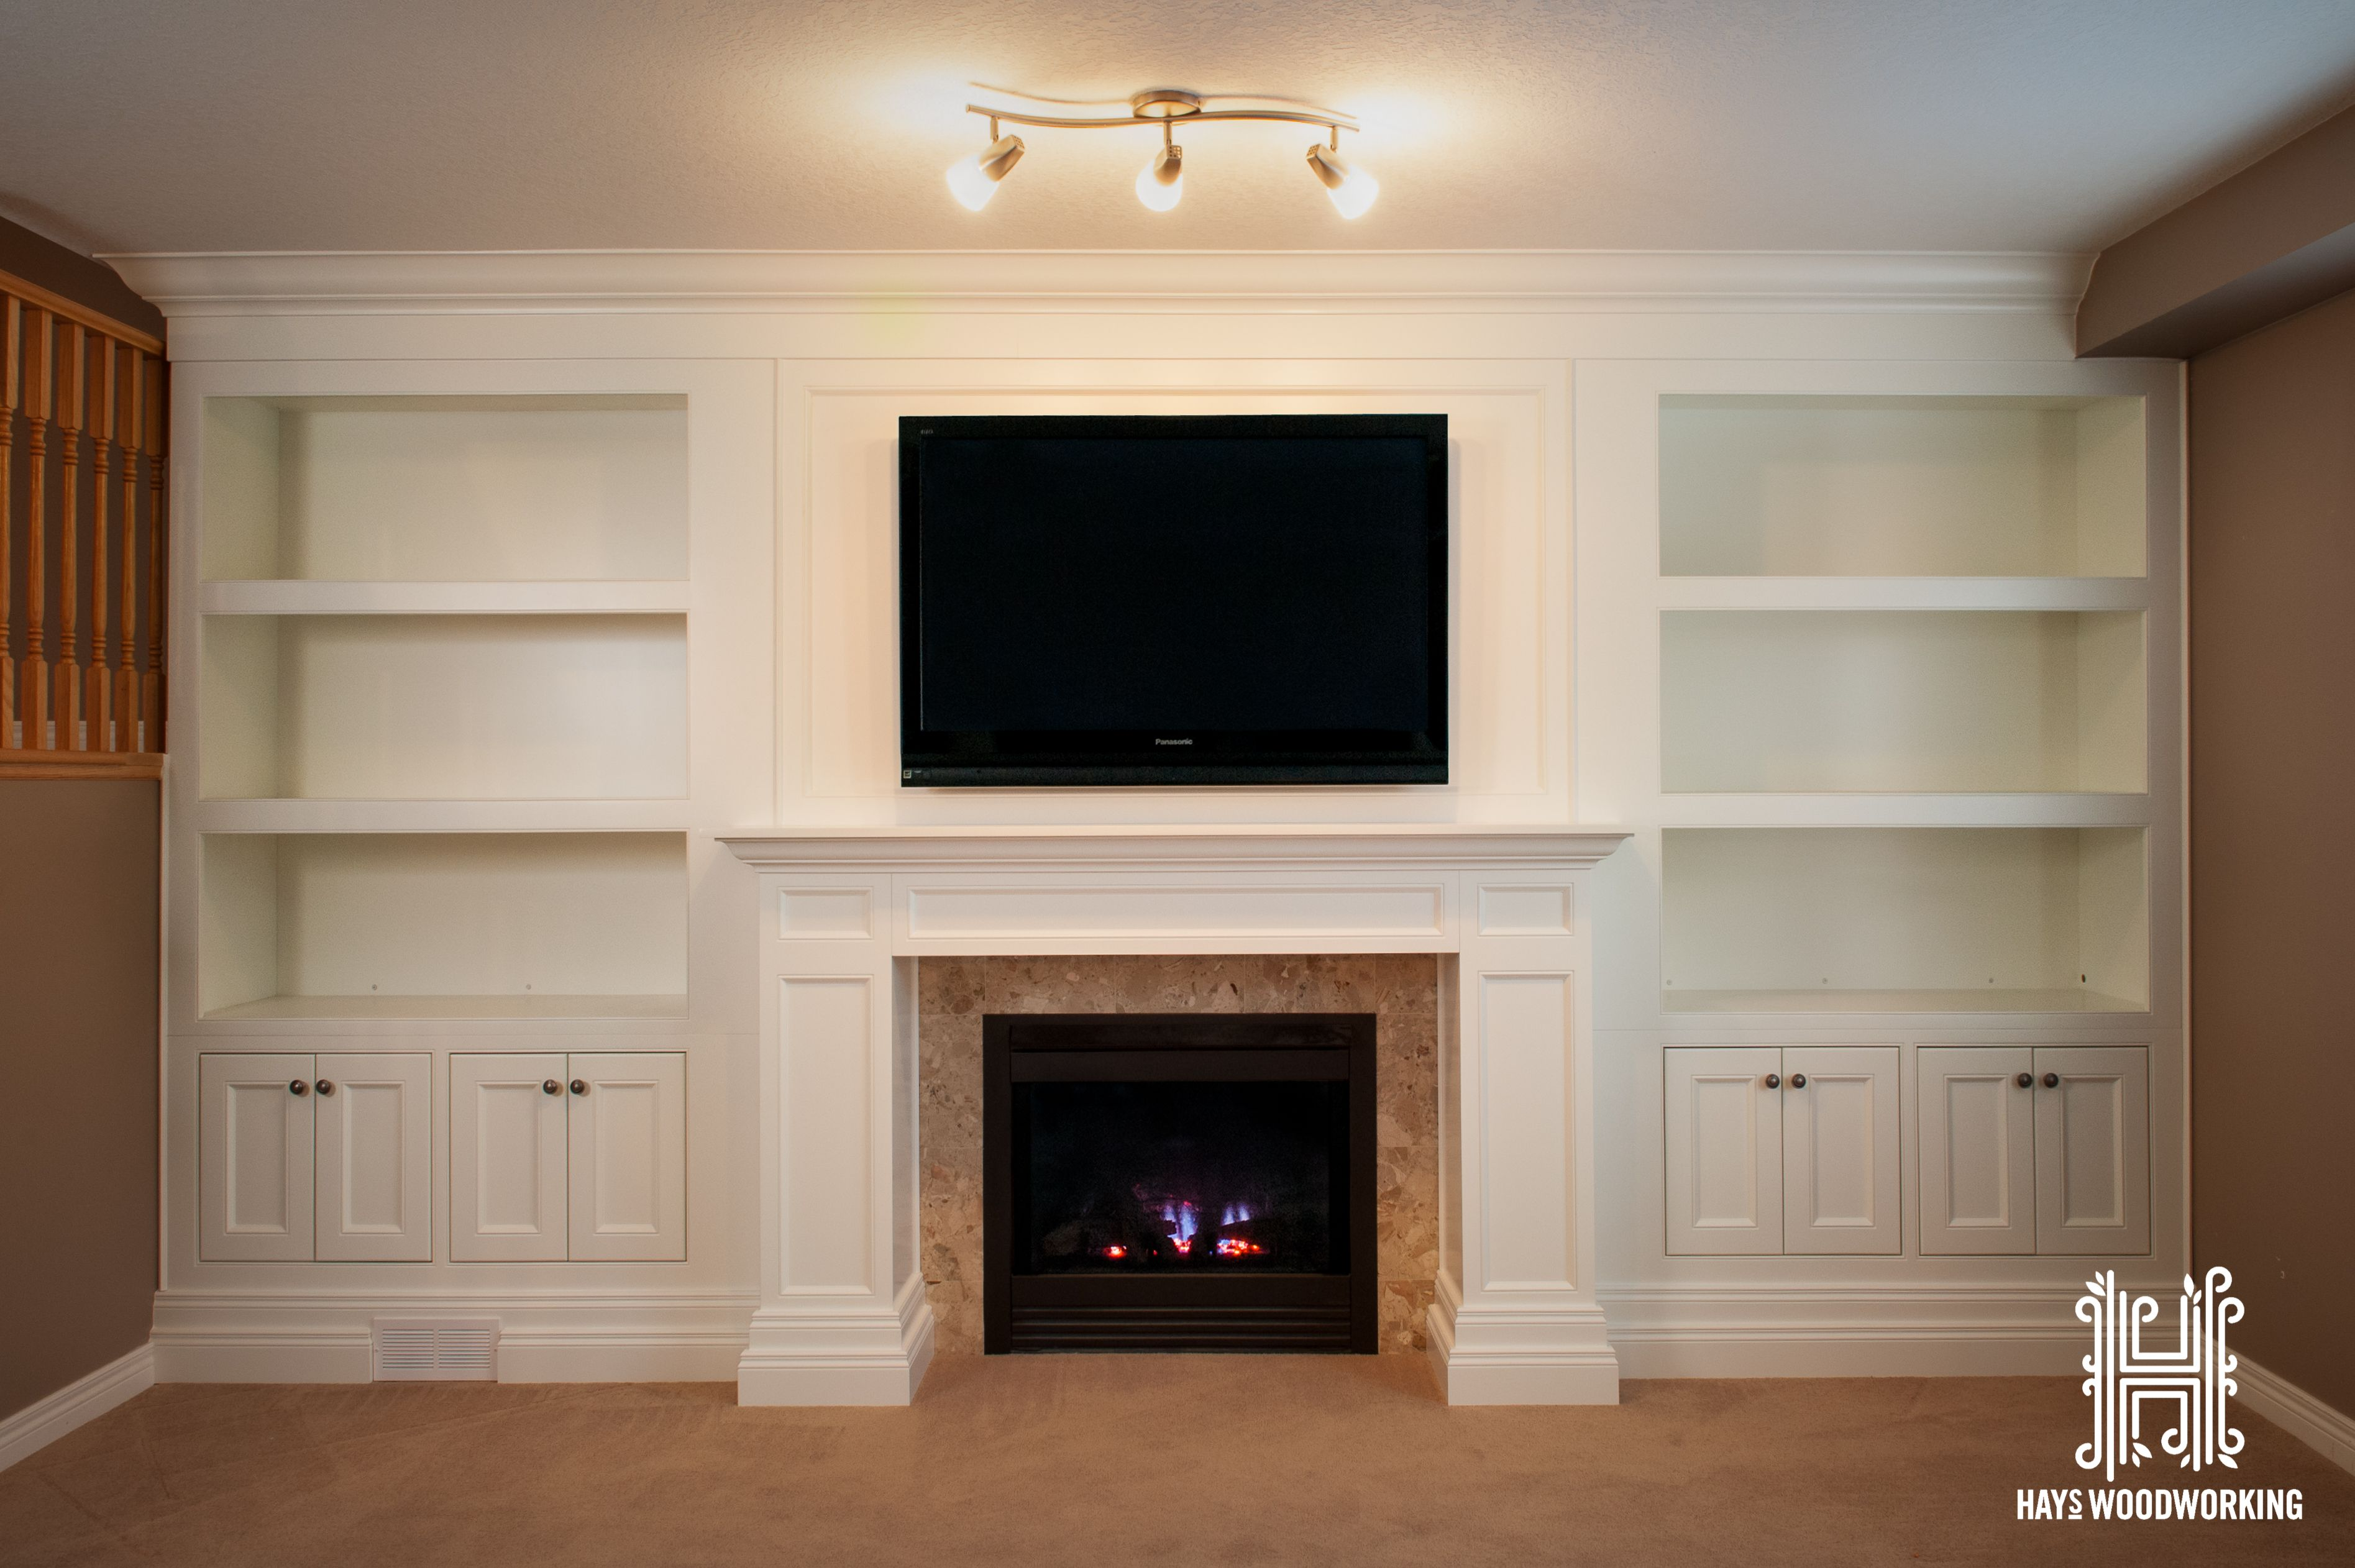 Builtin entertainment unit/fireplace mantle. Wall units